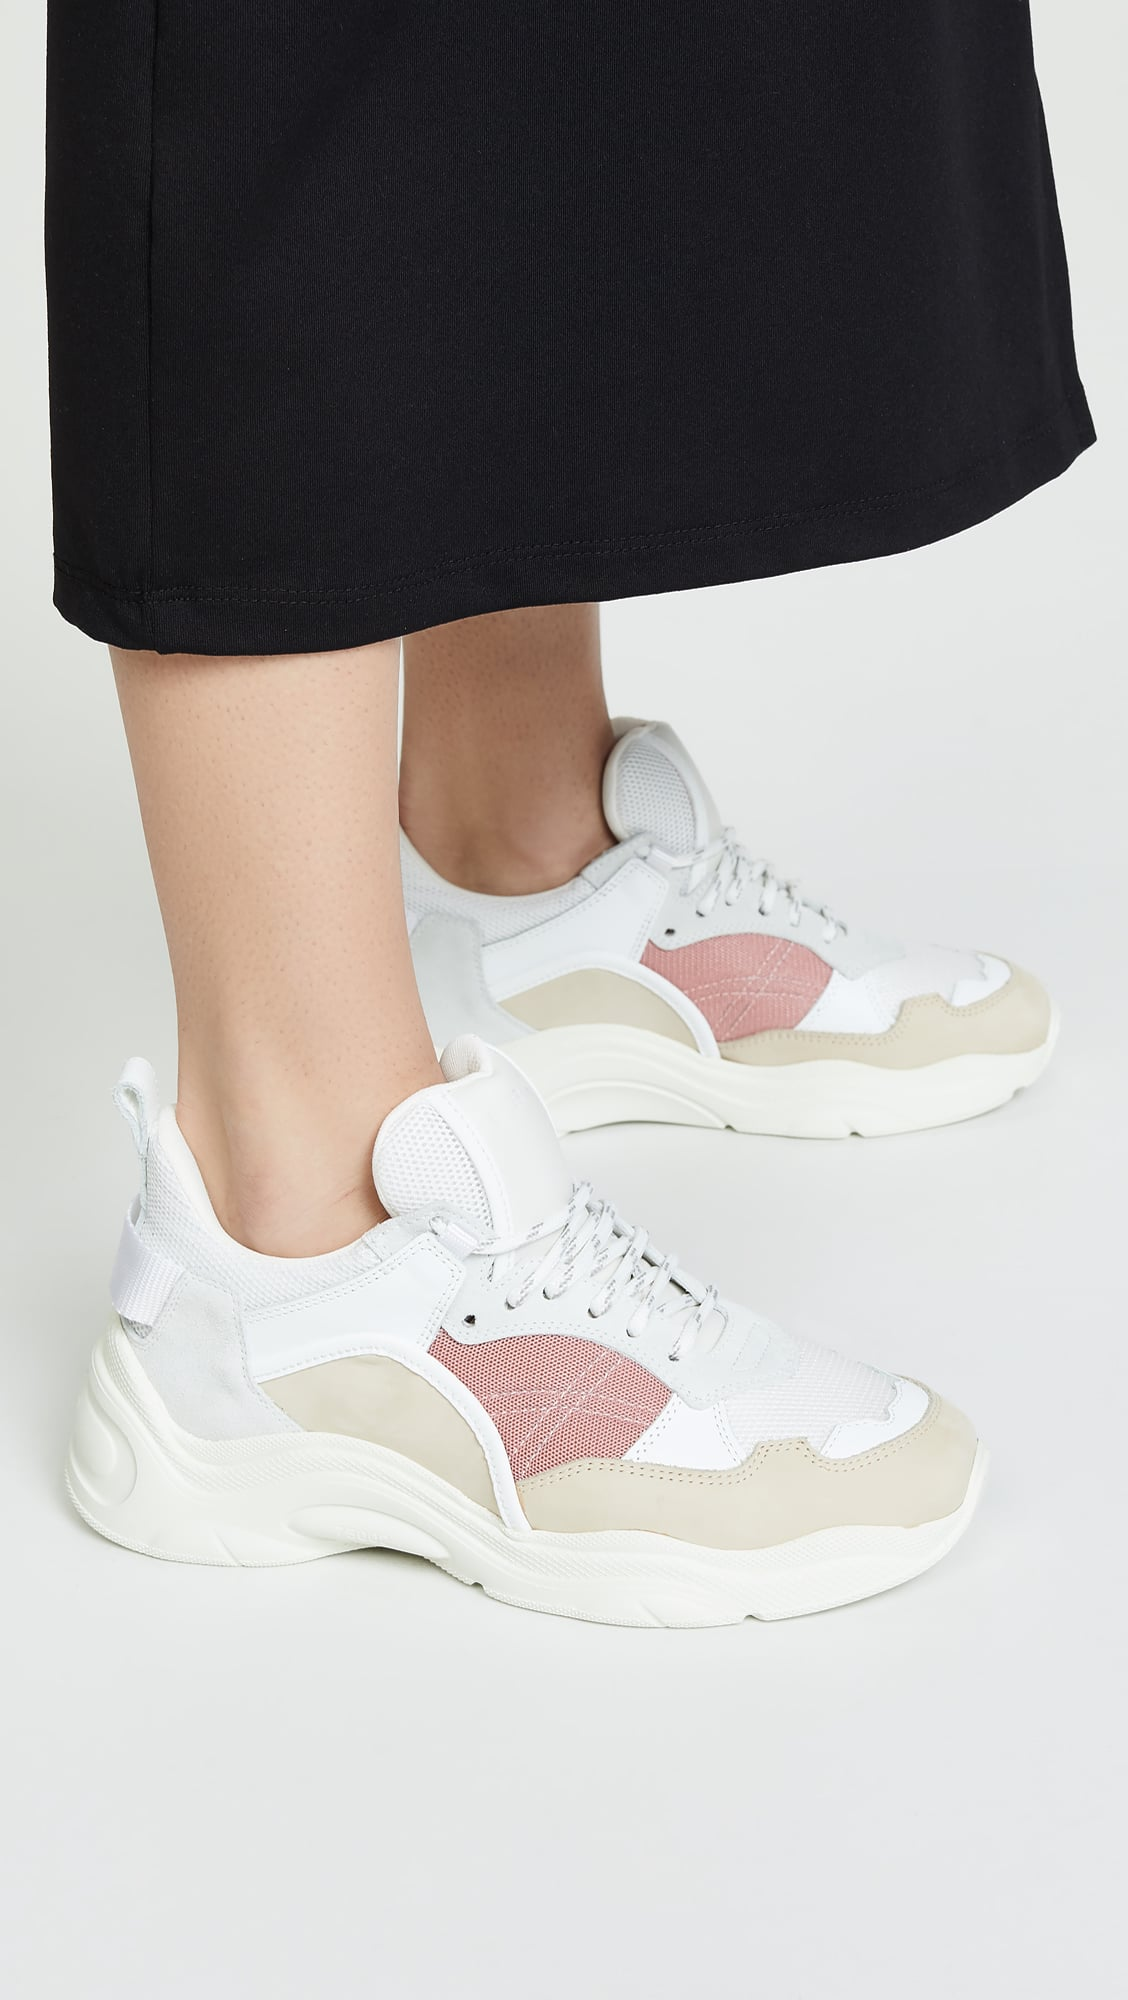 c8376cba IRO Curverunner Sneakers | The 103 Best Shoes of Spring 2019 Will ...